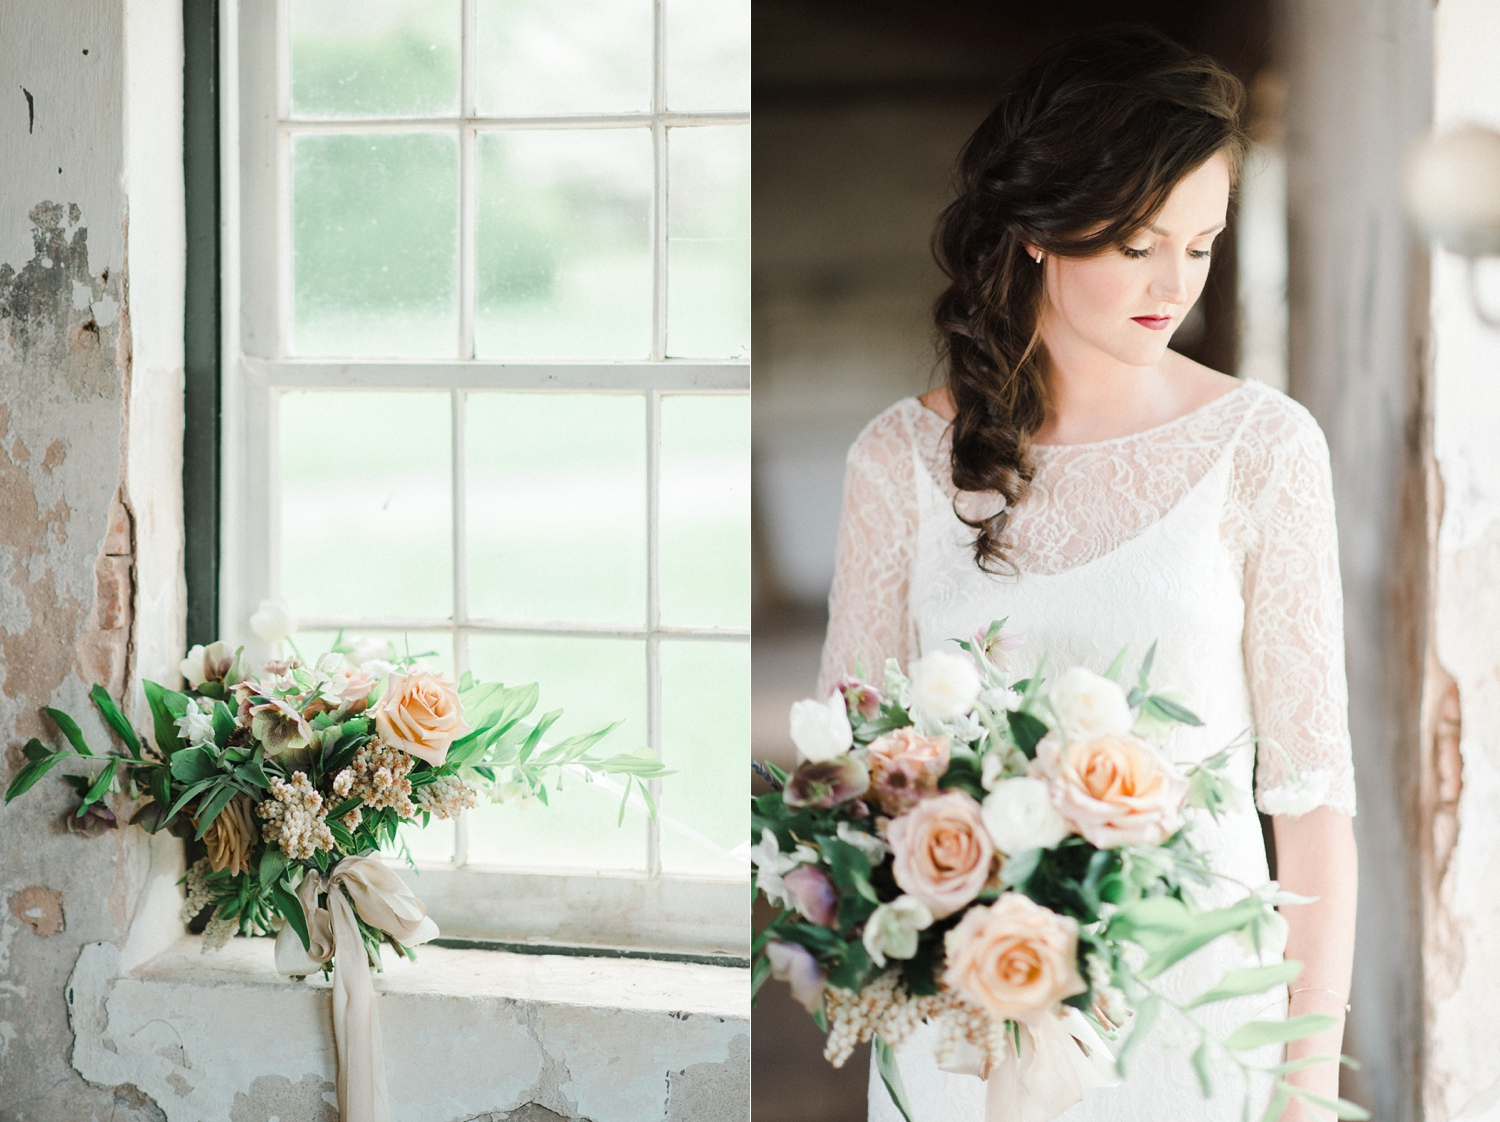 cottage_hill_herb_inspired_wedding_Oatlands_VA_wedding_Photographer_0046.jpg